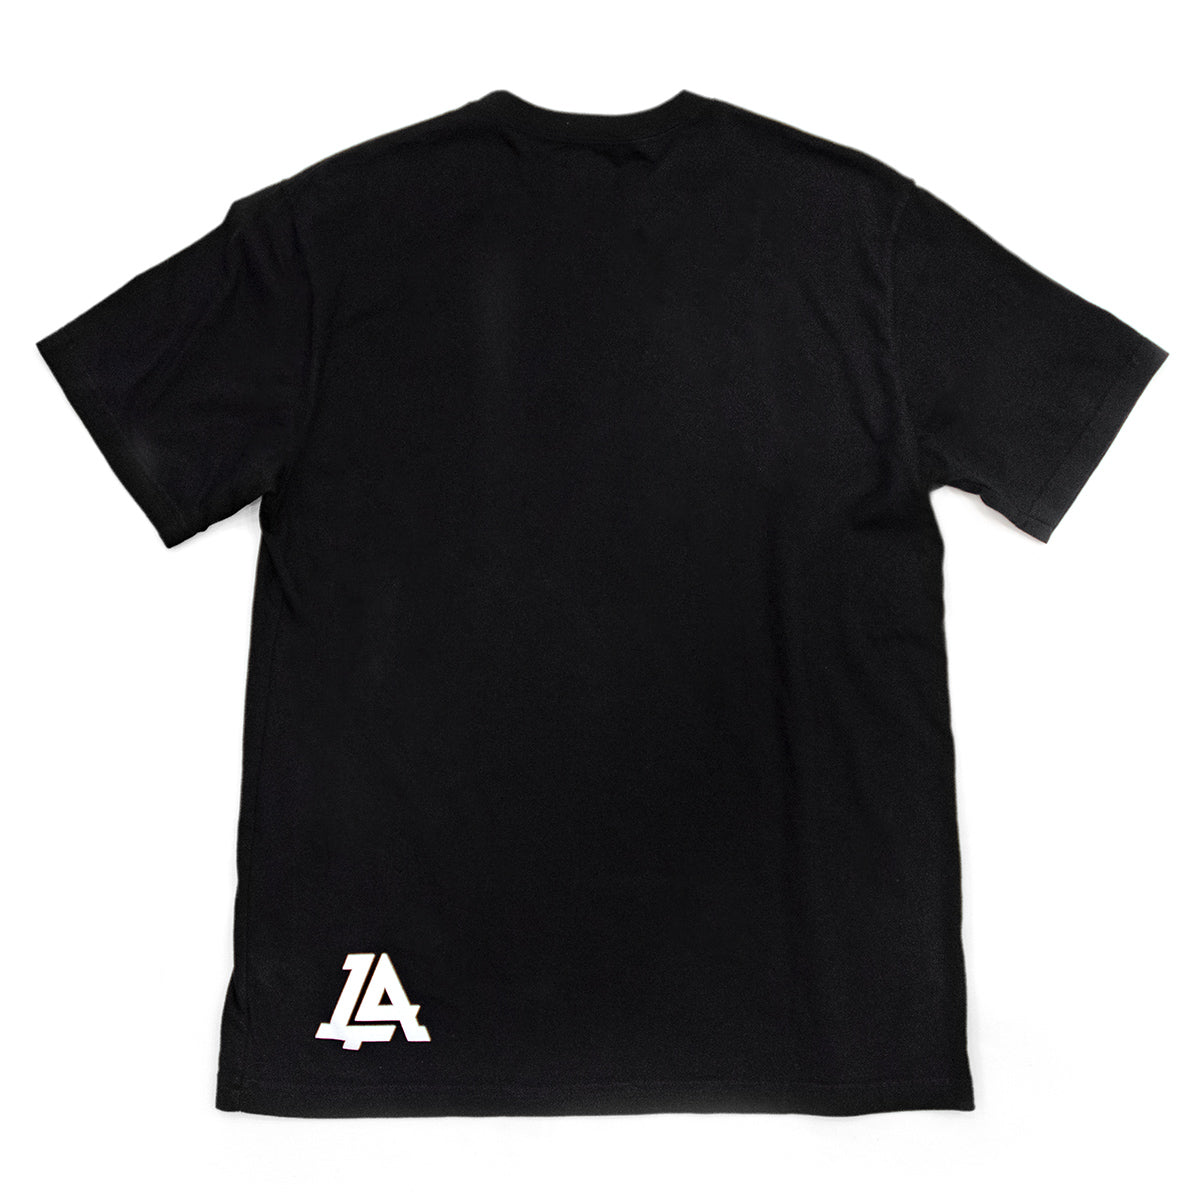 Lost Art Canada - white on black lost art icon logo tee back view